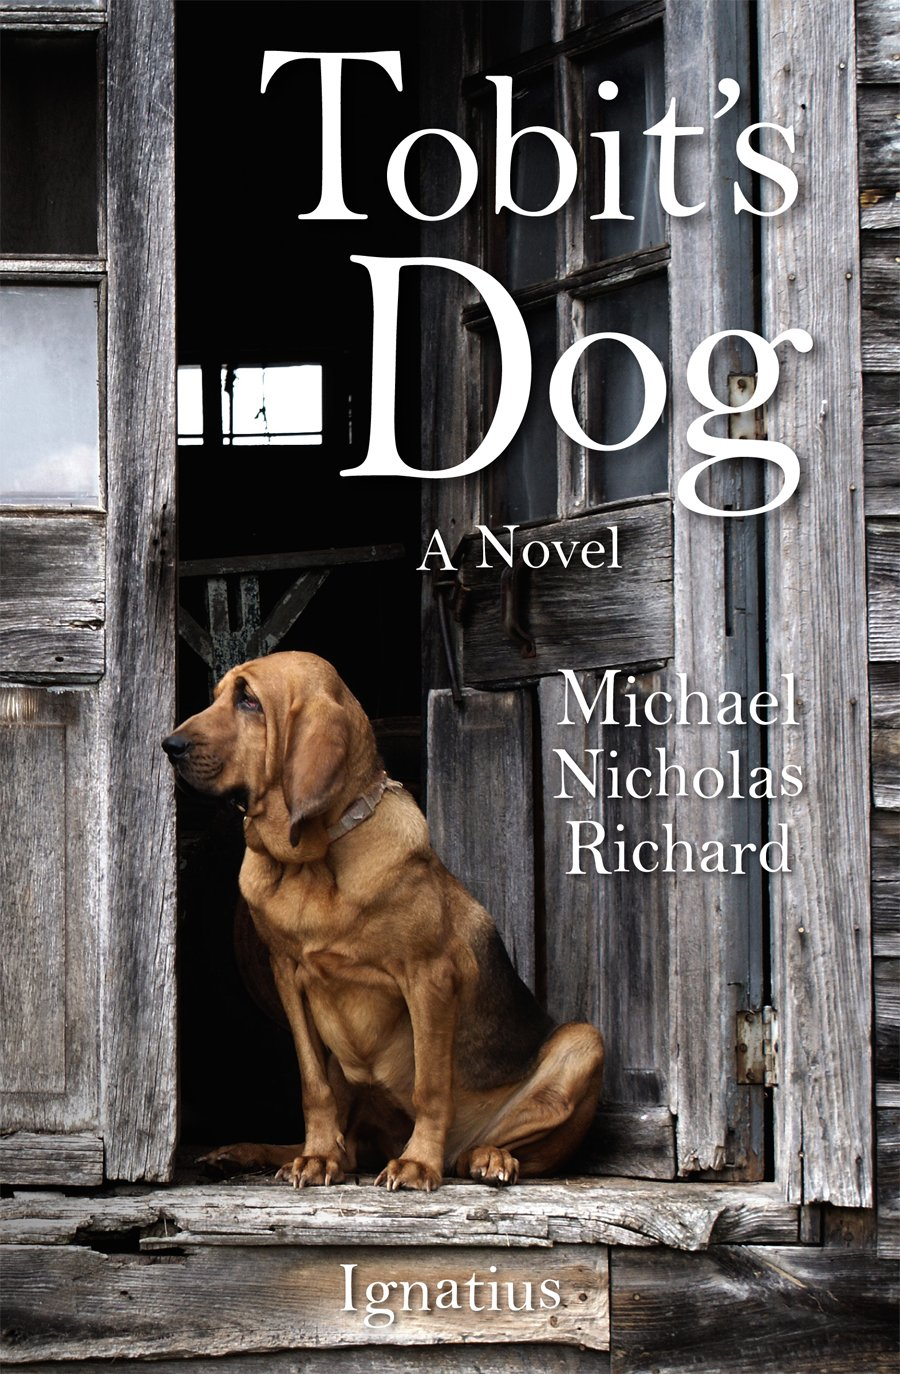 Summer Reading: Tobit's Dog